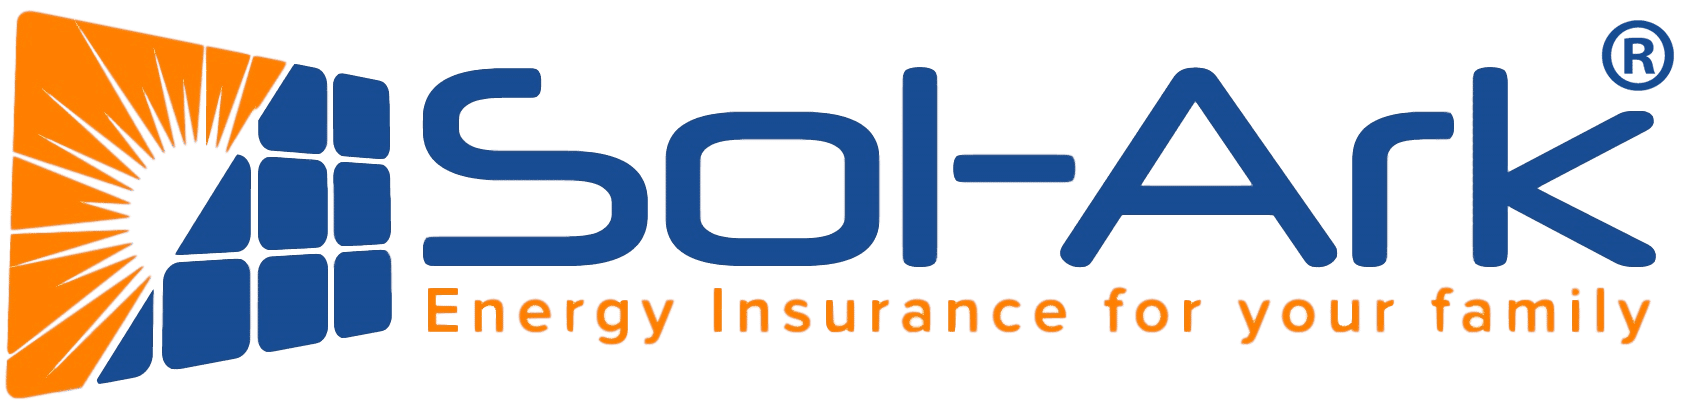 Energy Insurance for Your Family